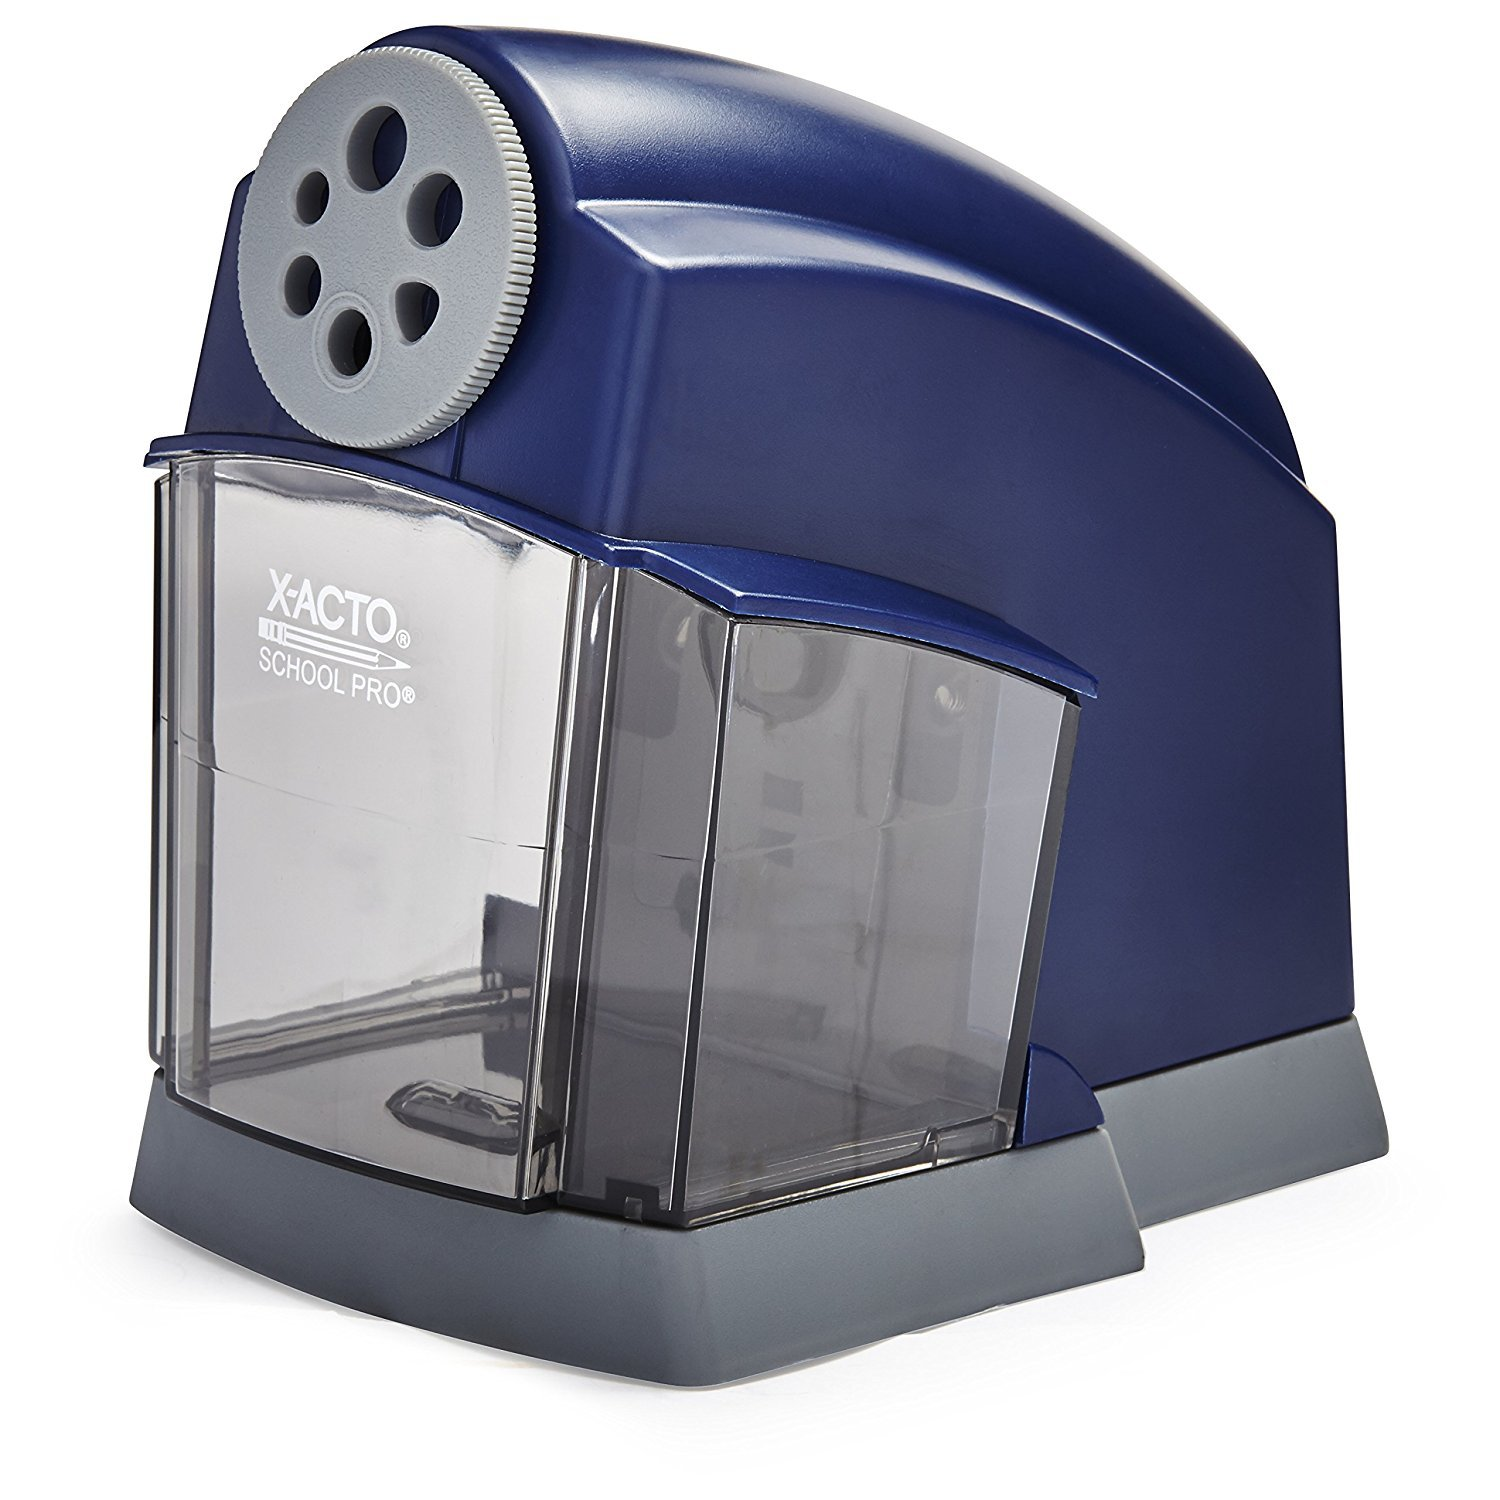 X-ACTO SchoolPro Classroom Electric Pencil Sharpener, Heavy Duty, Blue/Grey, 2 Count